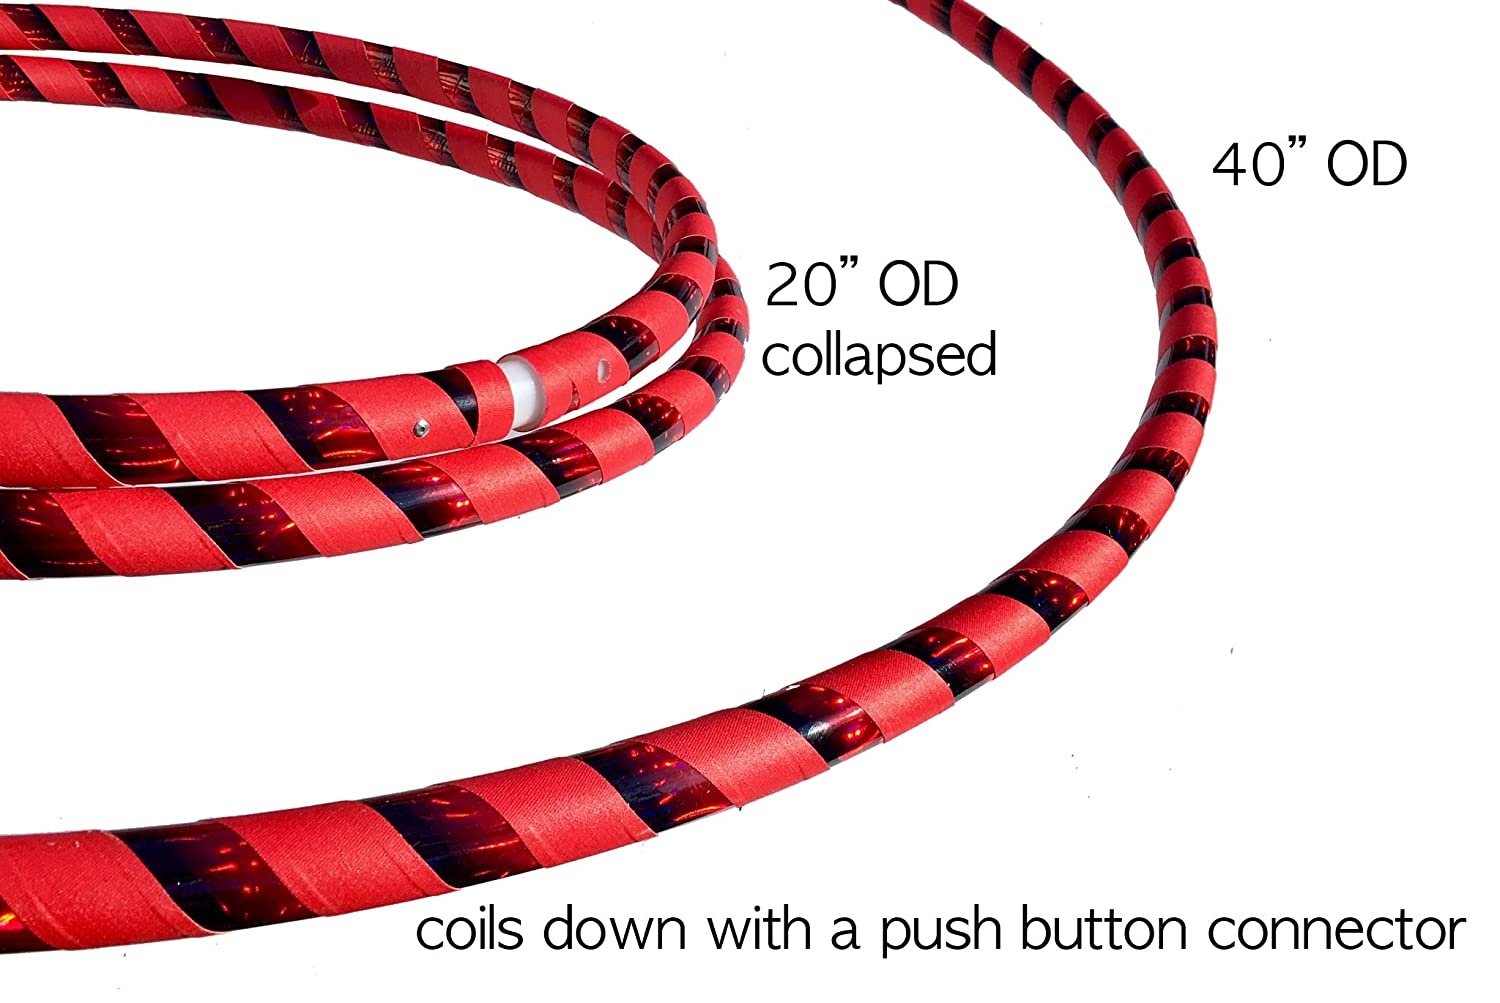 Hoop Size 40 Outside Diameter and Weighs 13.5 oz SpinMajik Beginner Adult Hula Hoop for Fun Fitness and Dance